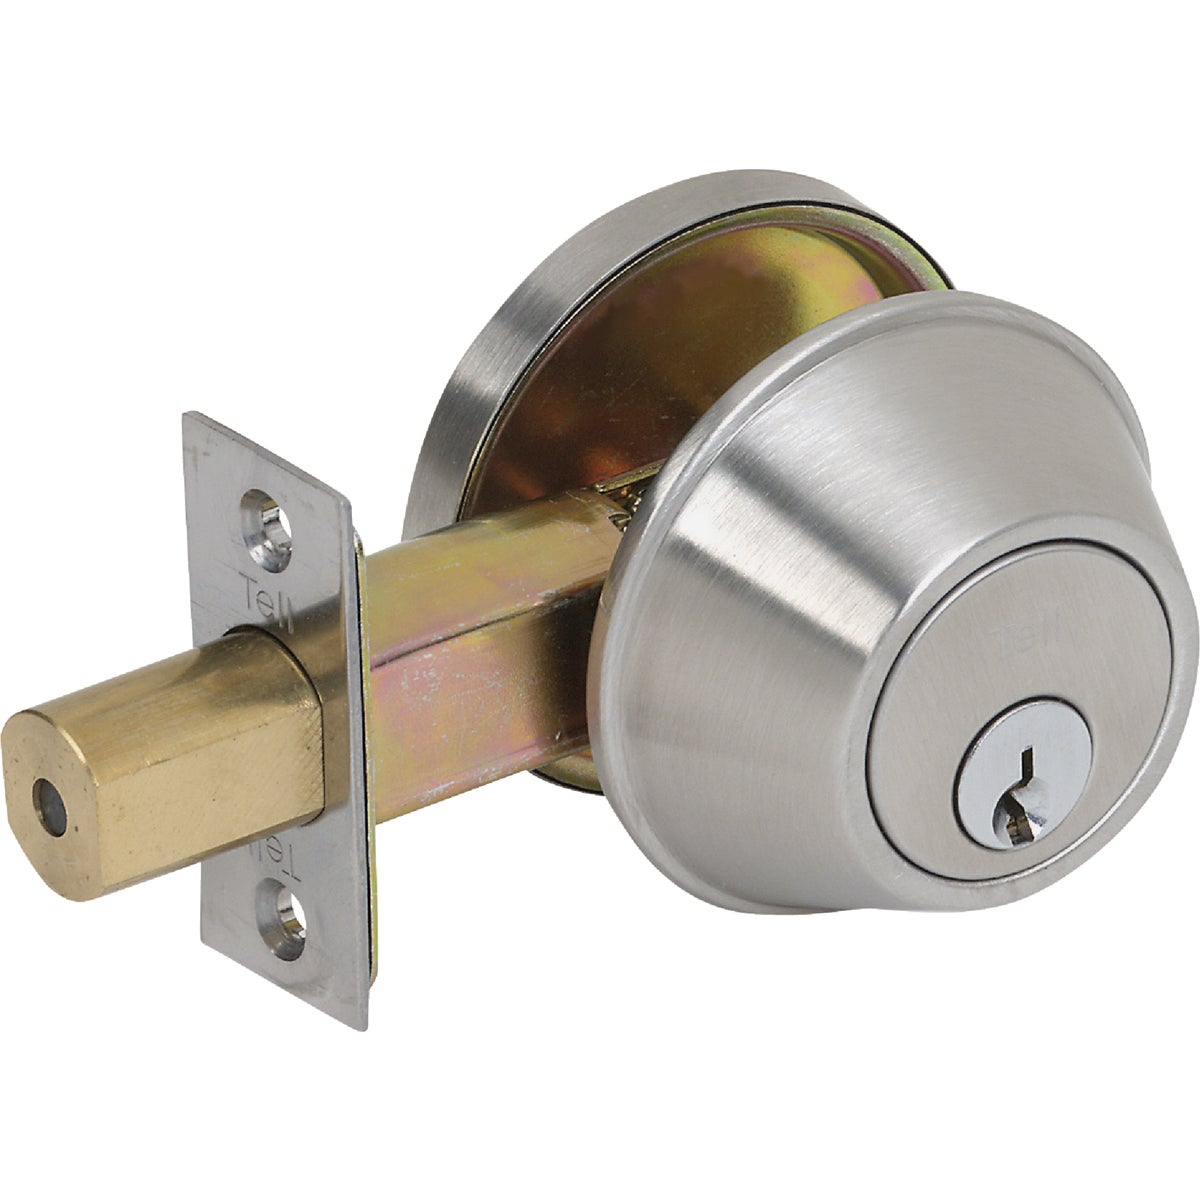 26D HD COMM 1CY DEADBOLT - CL100055 by Tell Mfg Inc